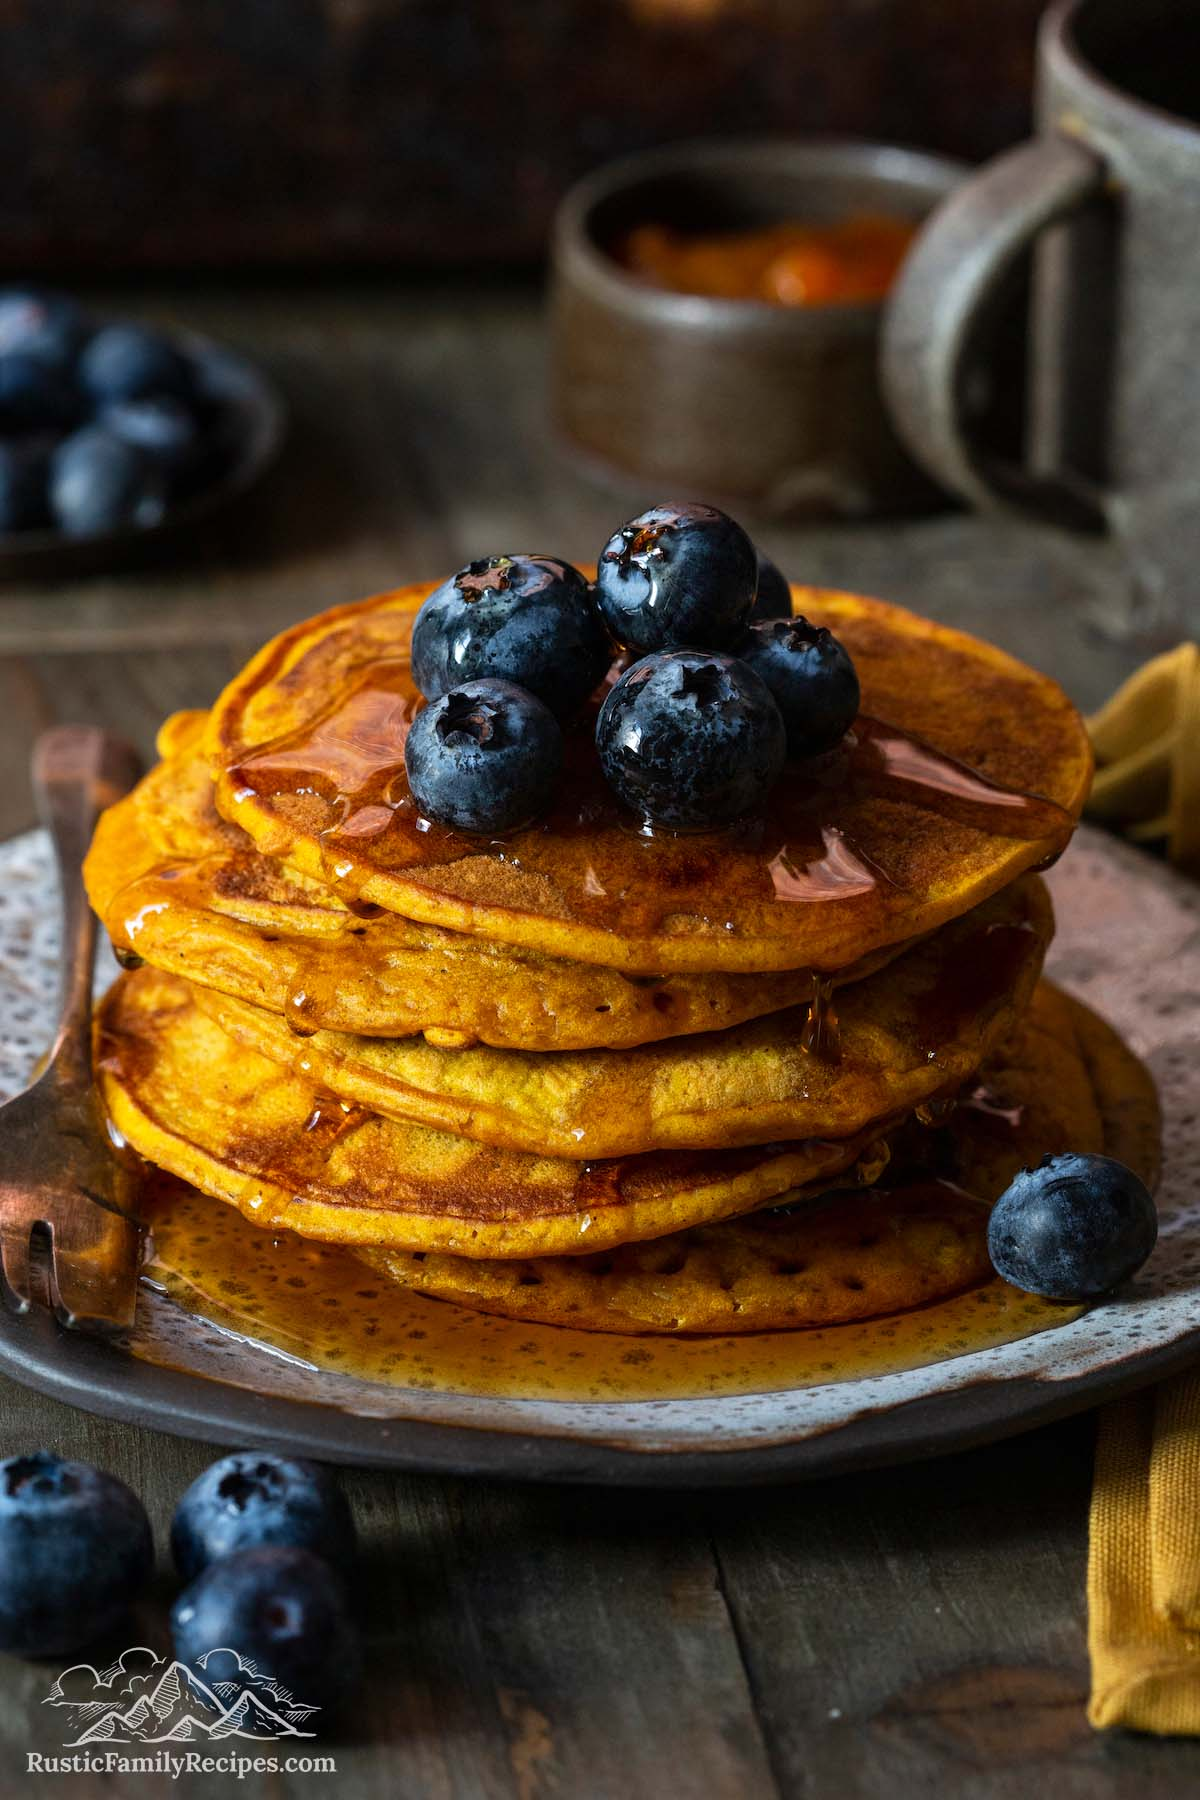 Tall stack of pumpkin pancakes with blueberries and syrup